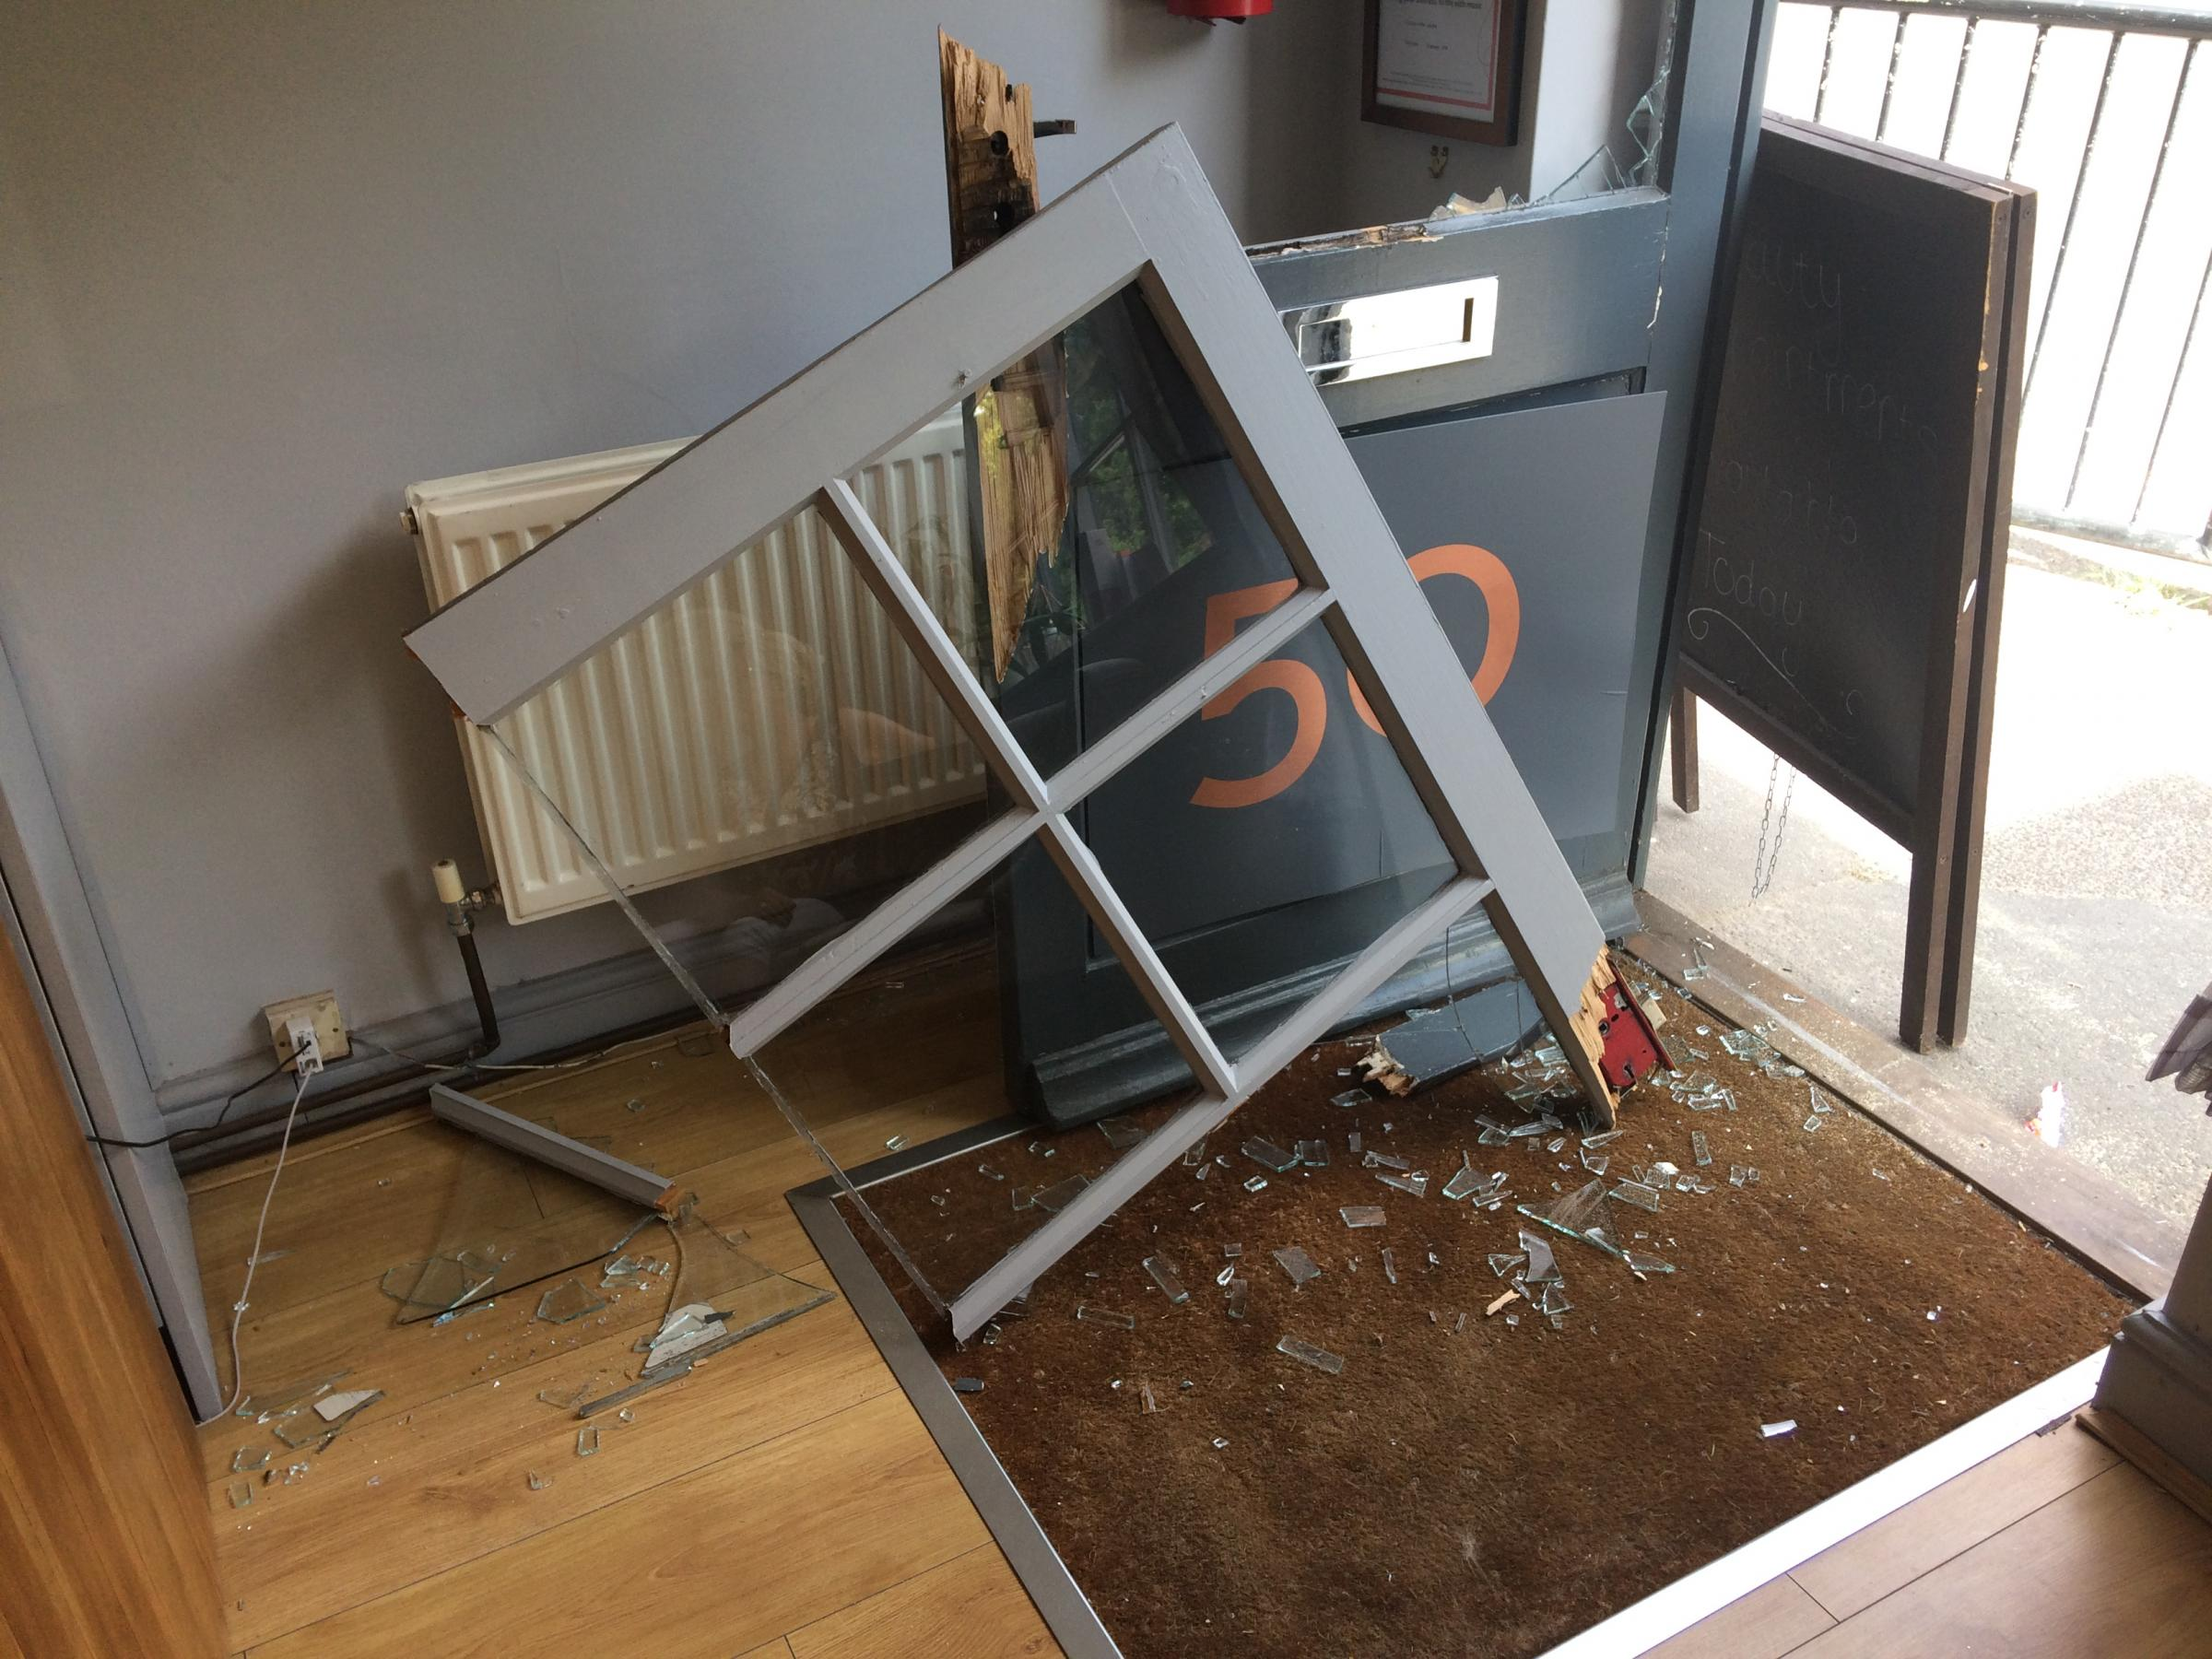 The damage done at Anna Green hairdressers in Castlegate, Malton following a break-in.